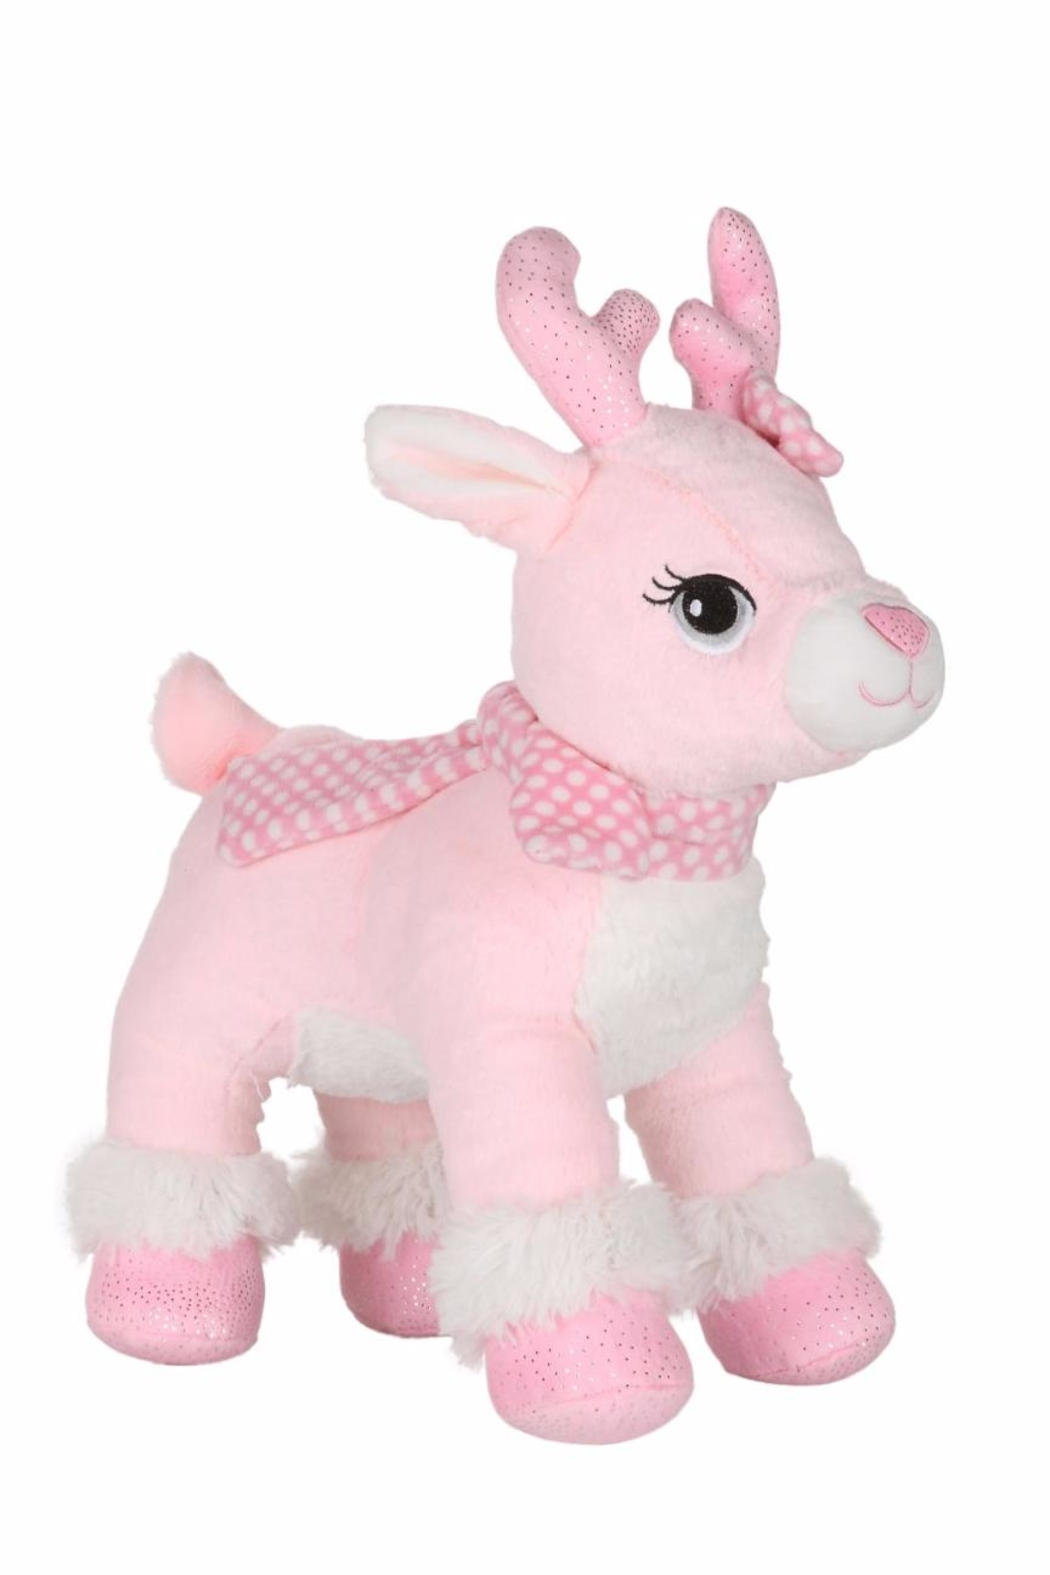 Cuddles and Friends Make-Your-Own Pink Reindeer - Main Image